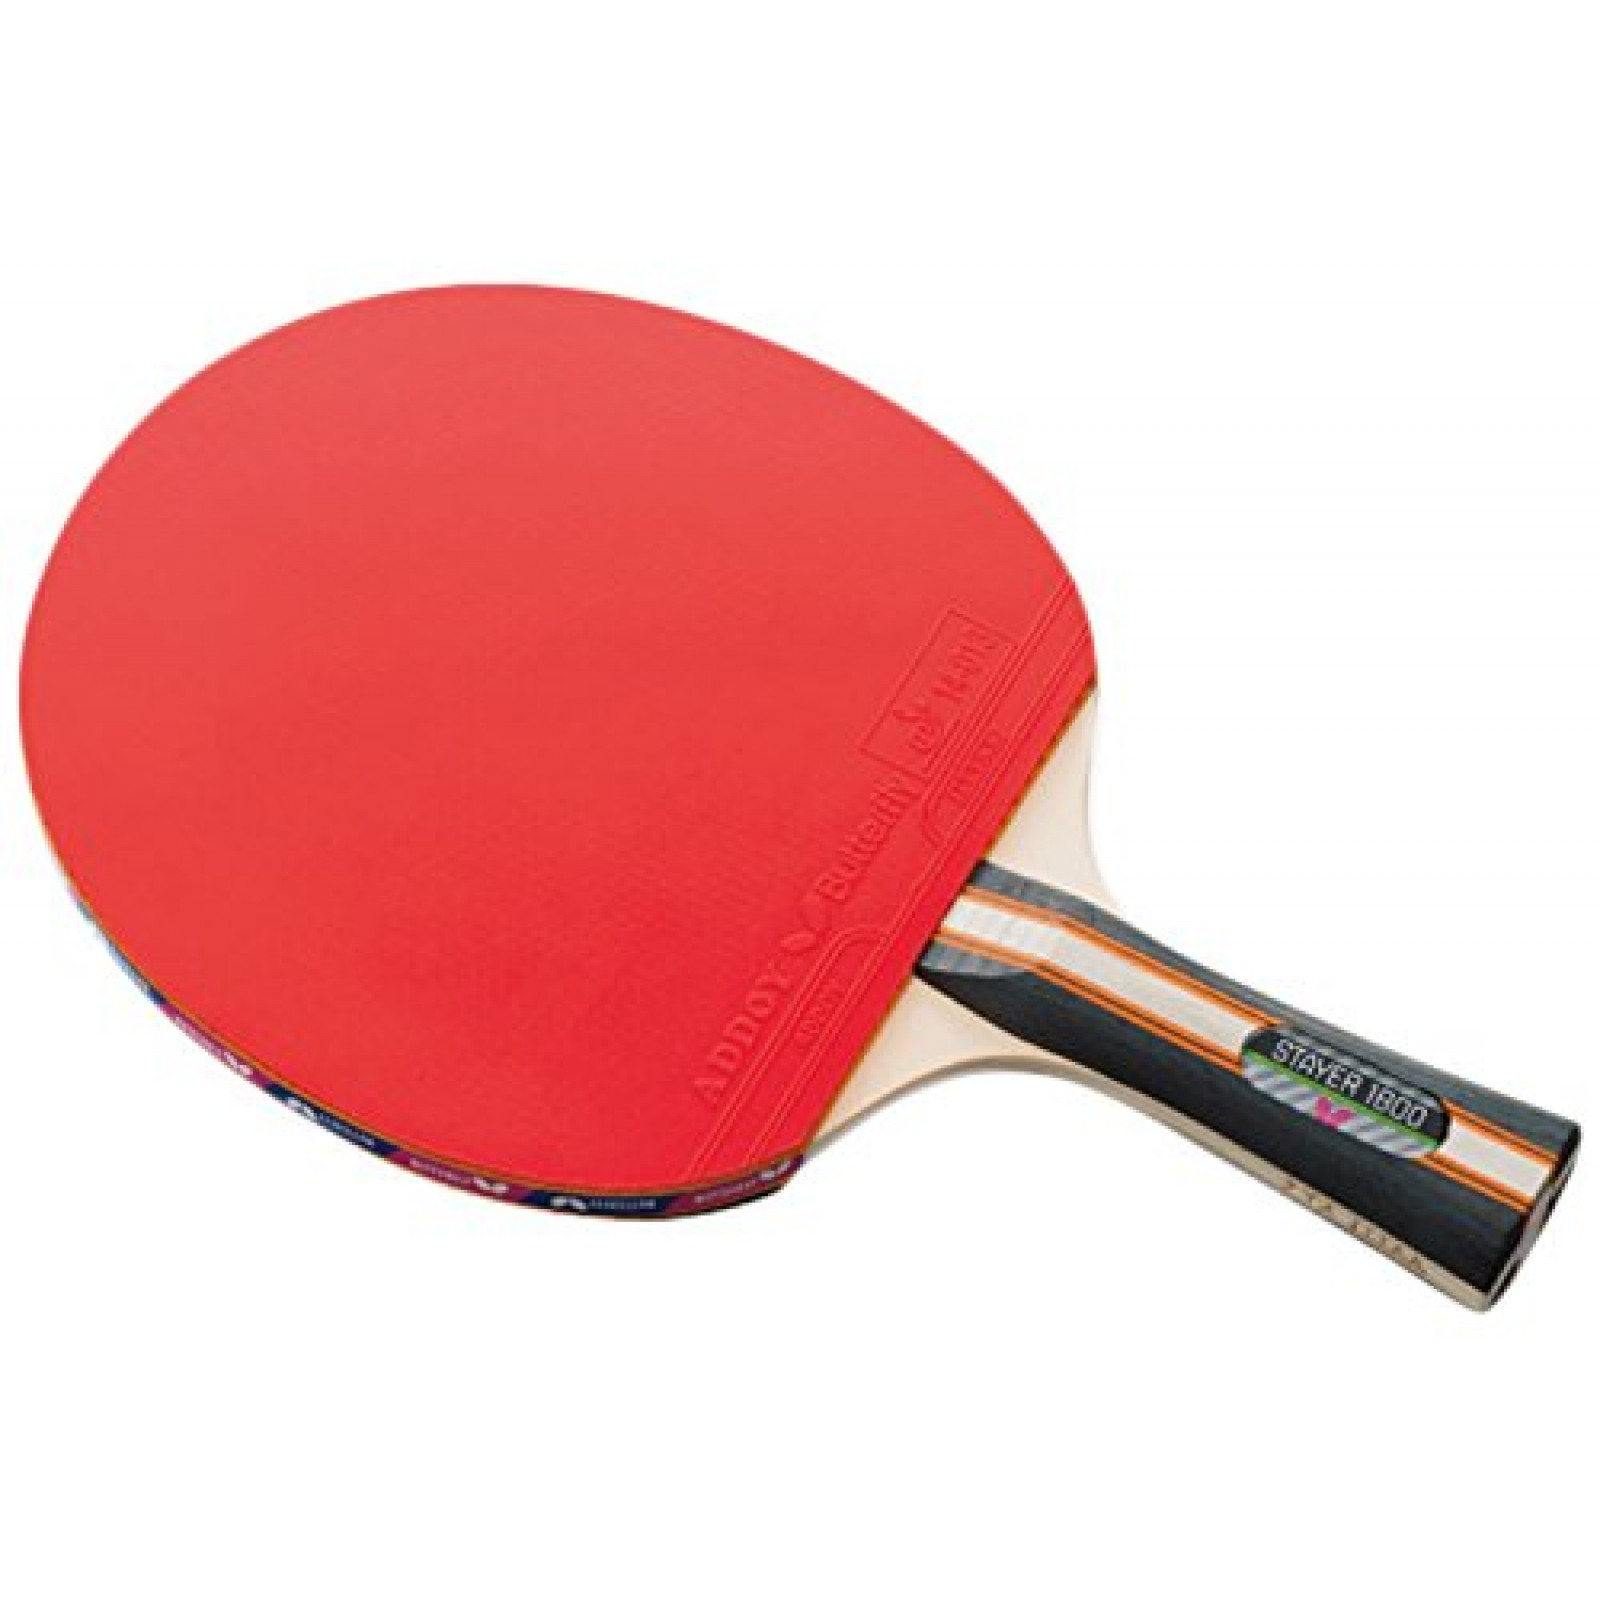 butterfly equipment table anqi luo youtube tennis watch s